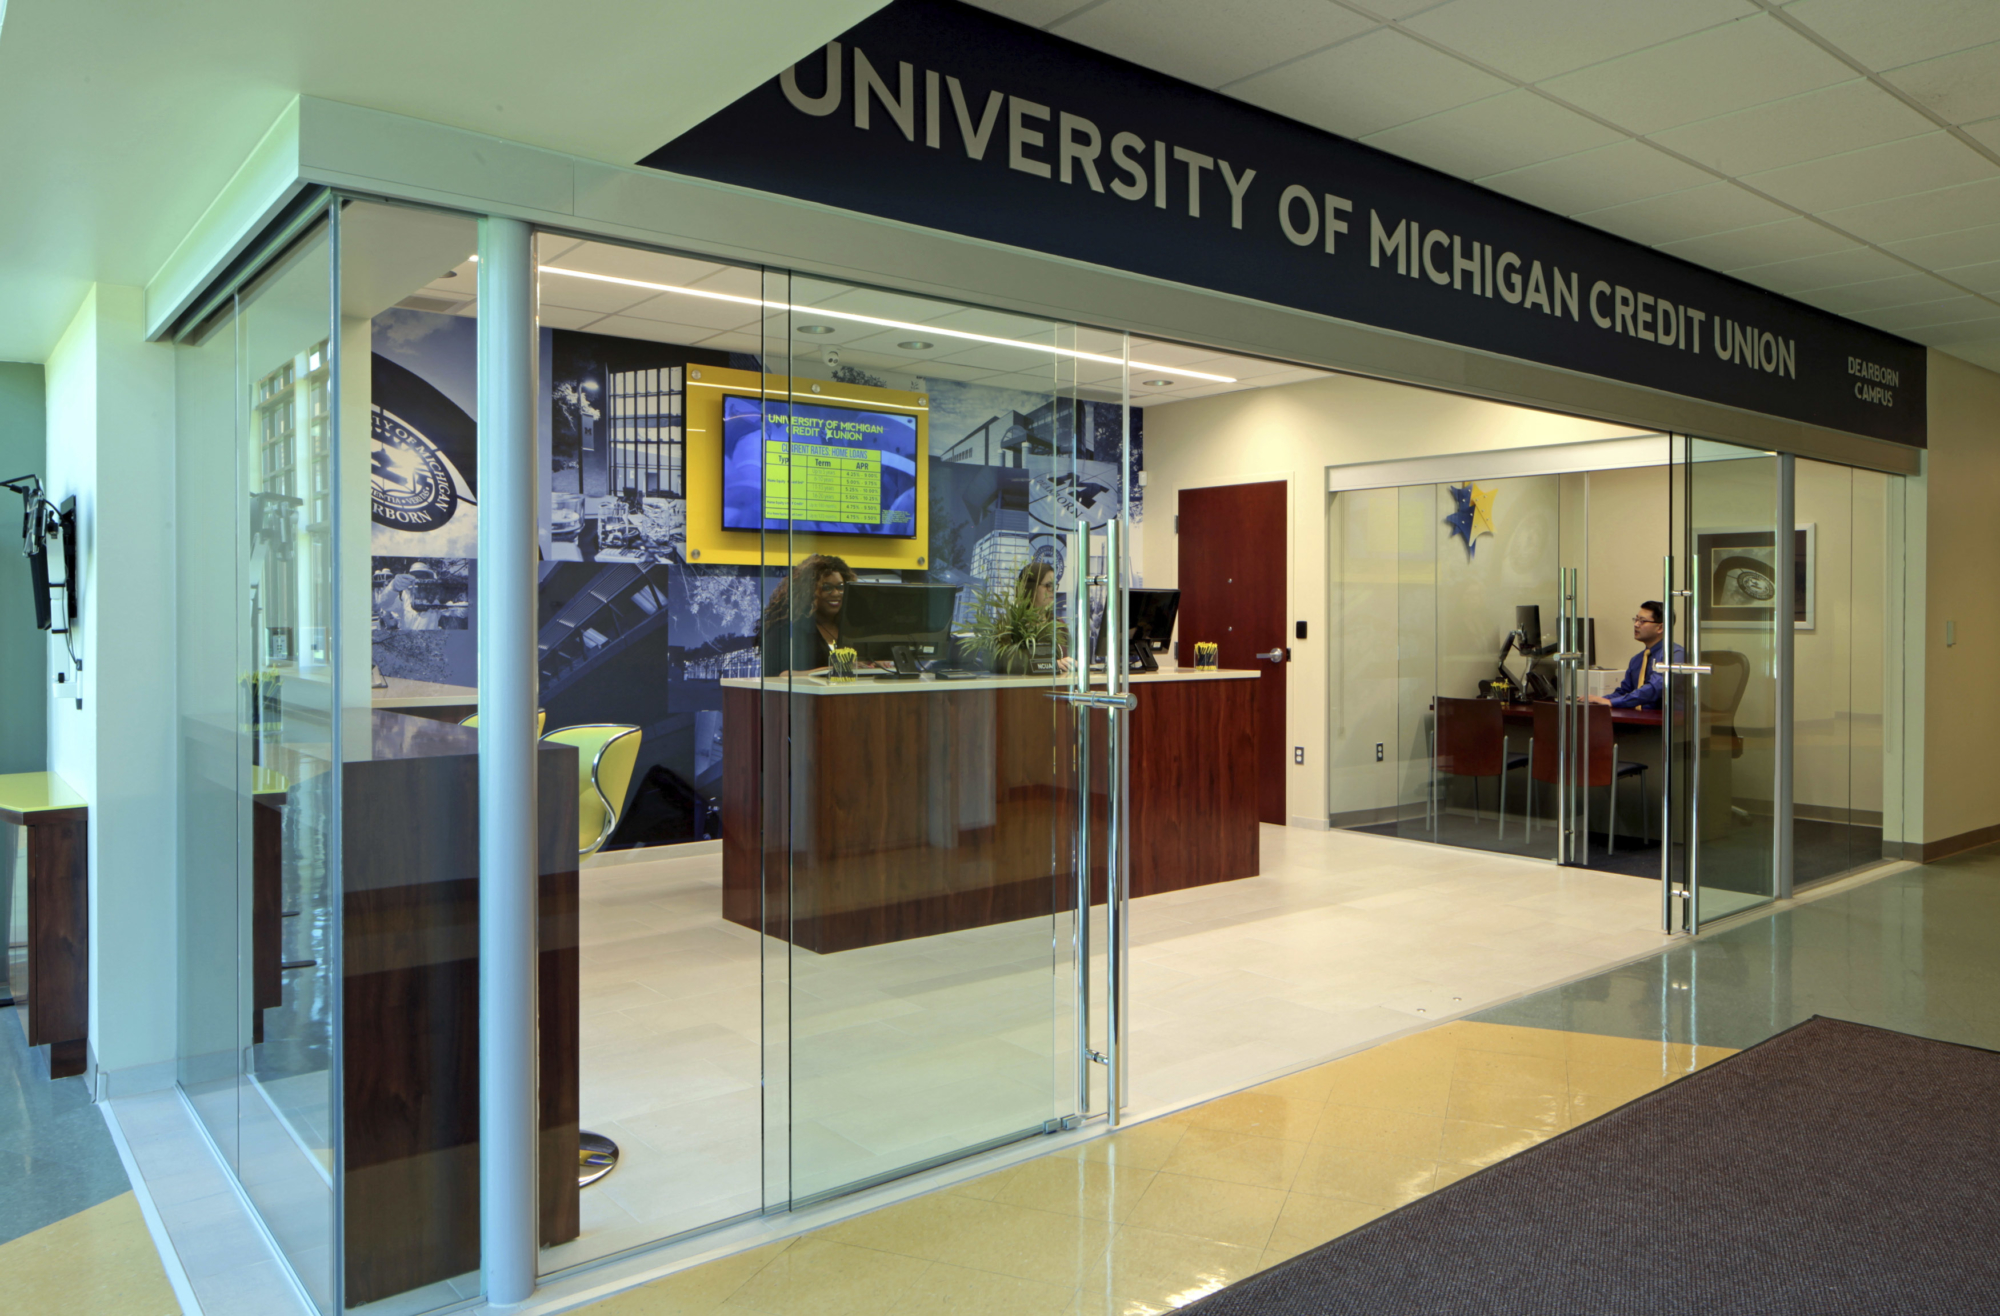 University of Michigan Credit Union Dearborn Branch